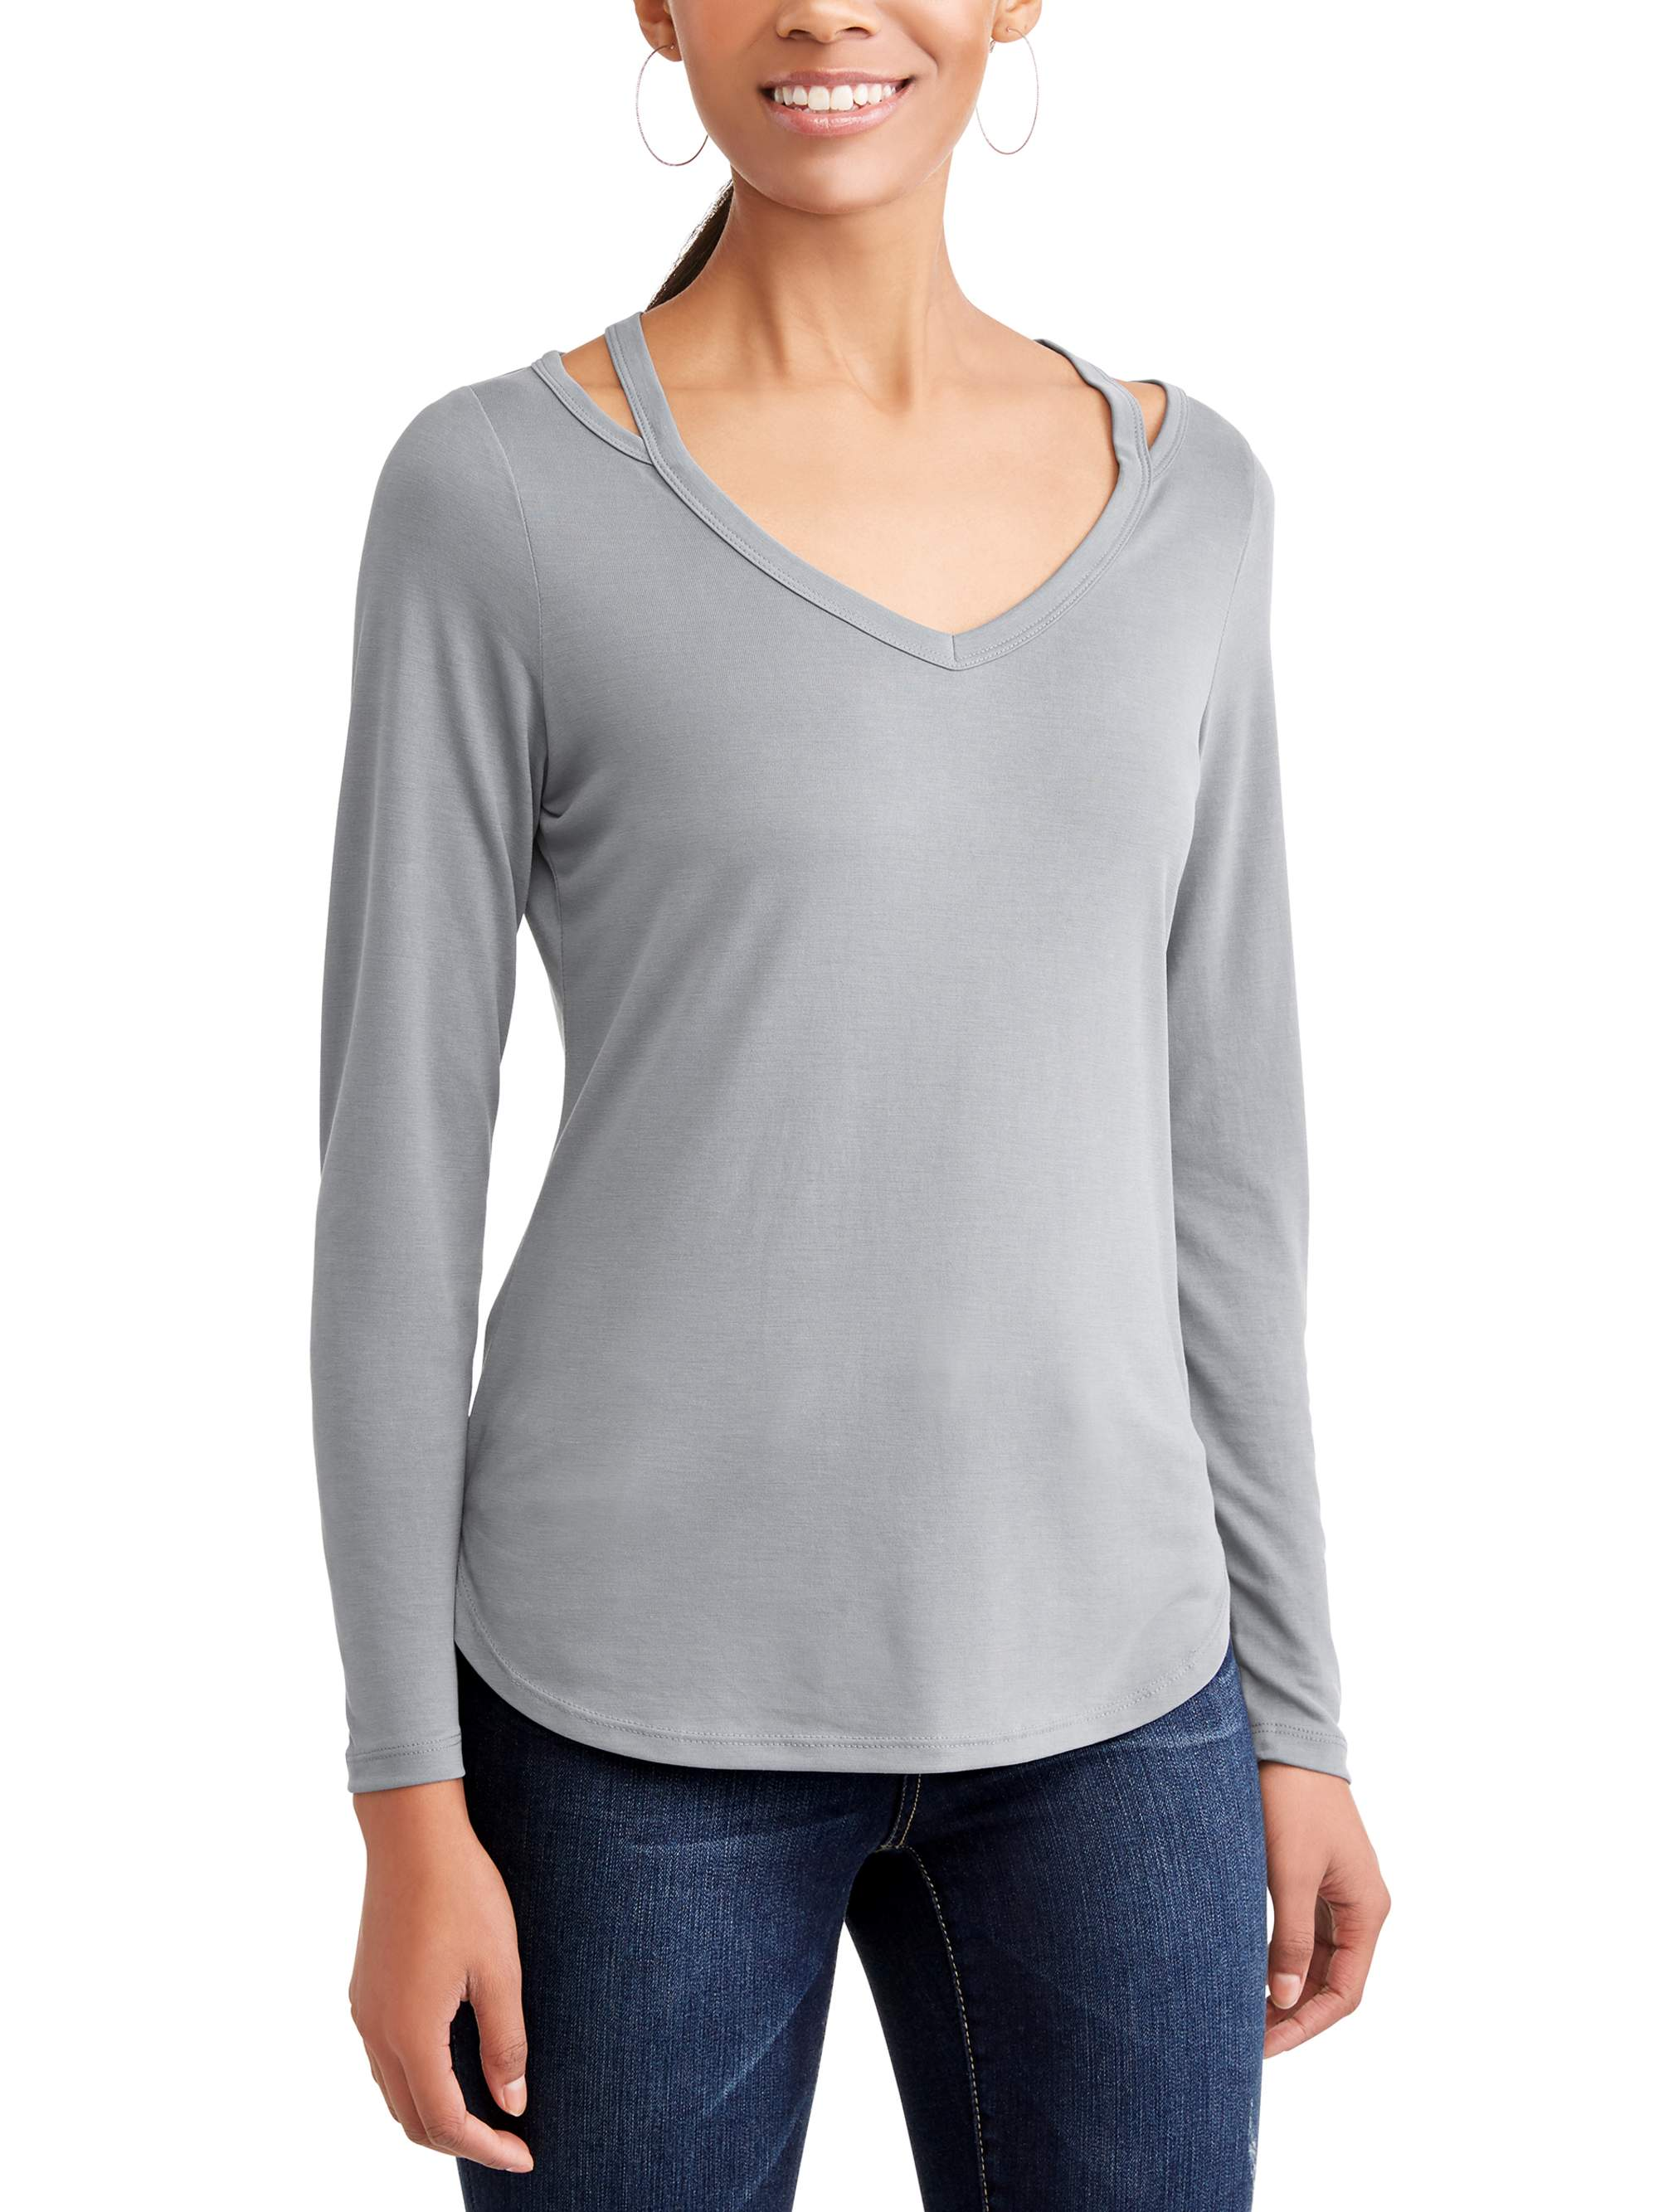 Women's Long Sleeve Elevated T-Shirt